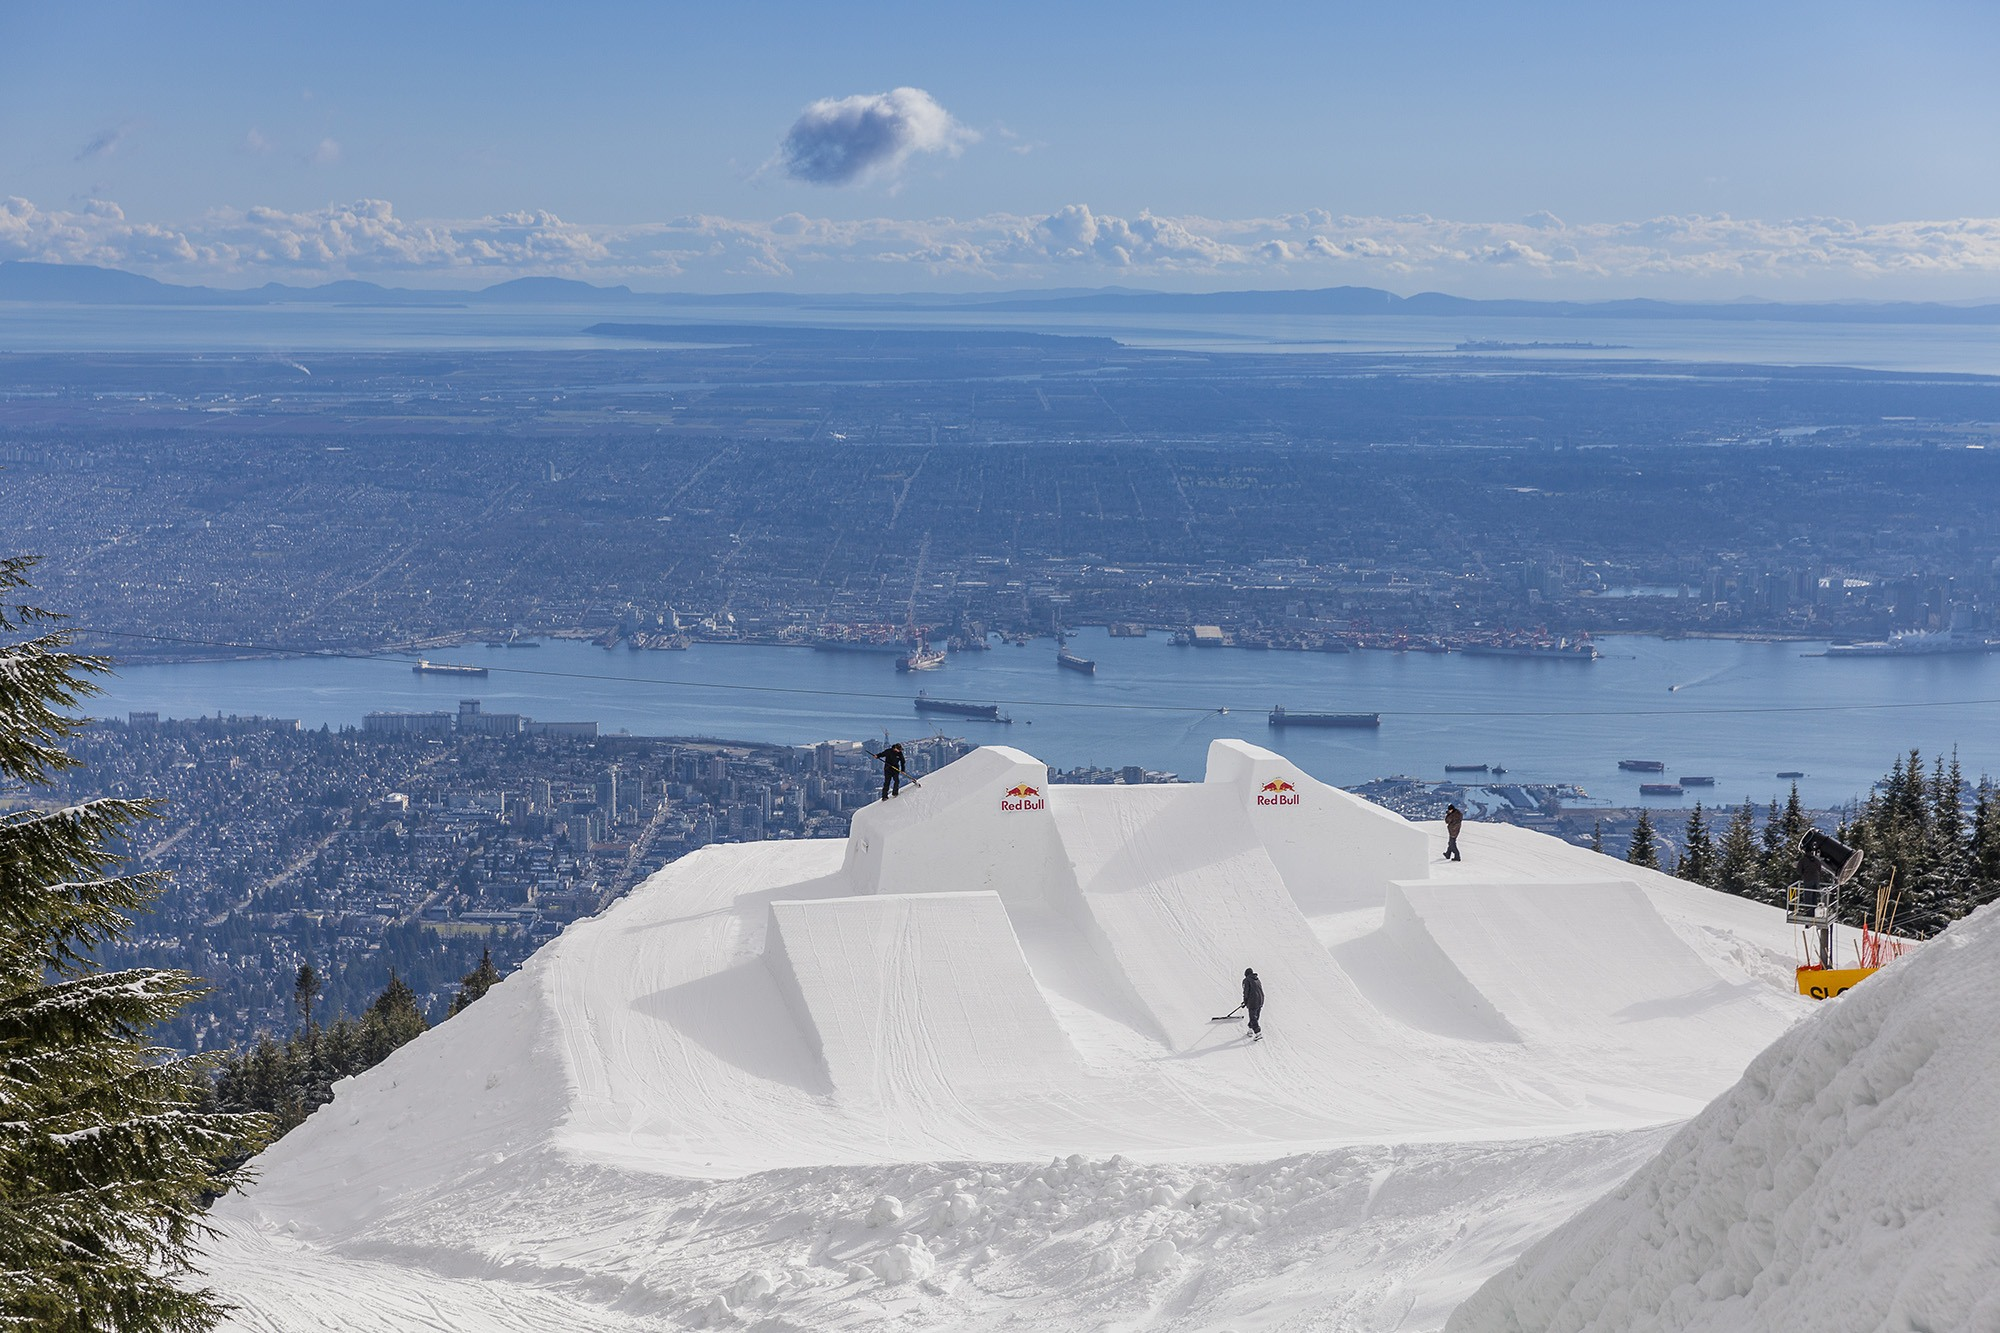 Venue of Red Bull Uncorked on Grouse Mountain in Vancouver, Canada on February 23, 2017 (Jussi Grznar/Red Bull)